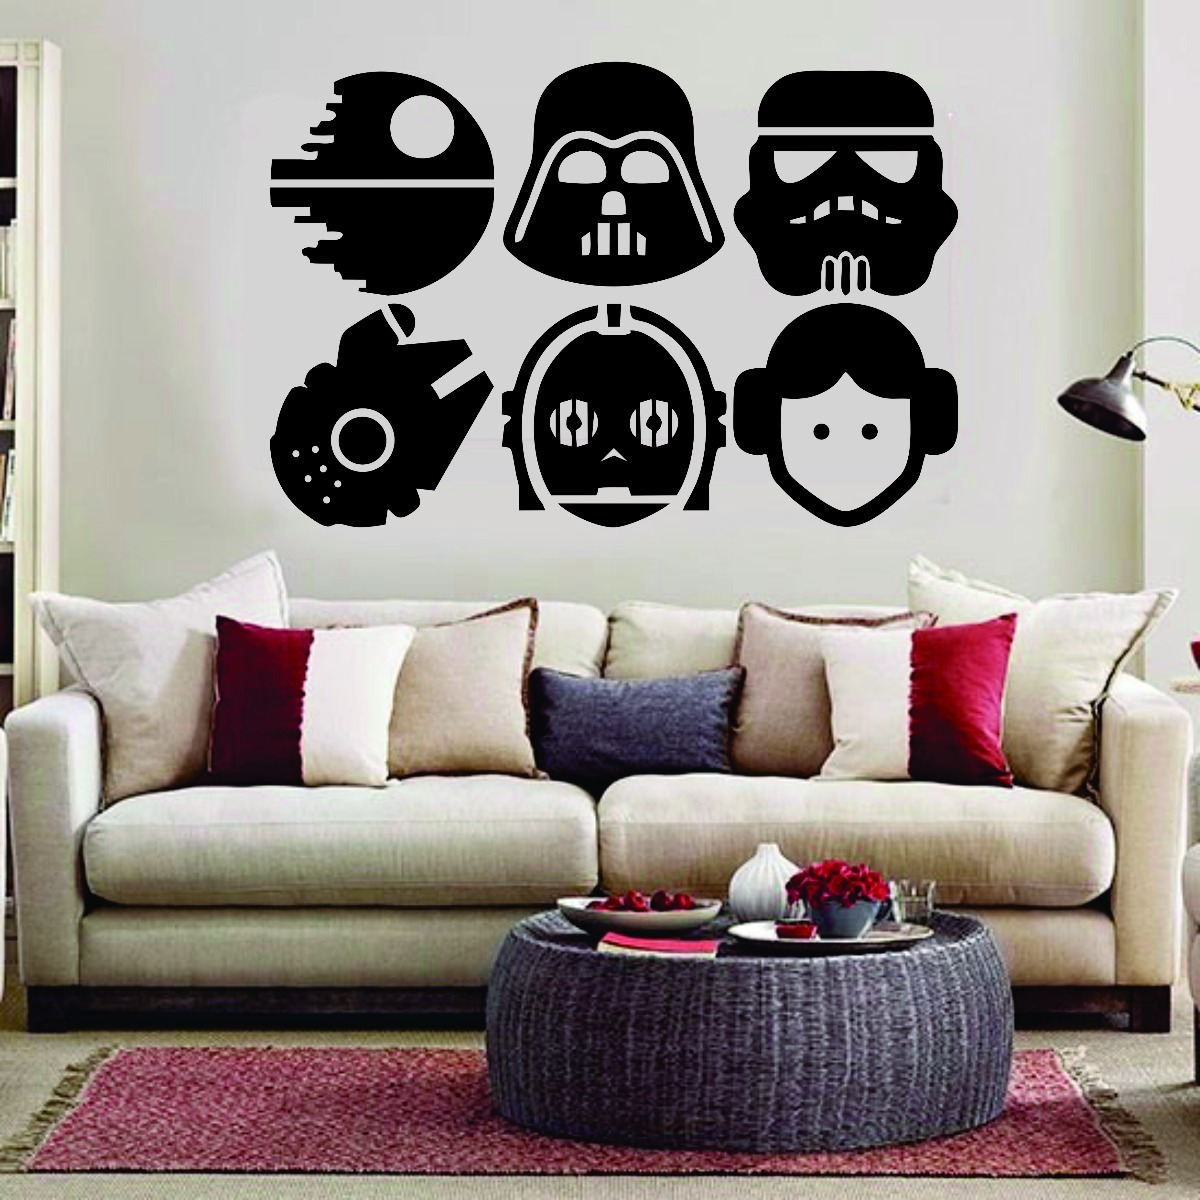 Vinilos Decorativos Star Wars Vinilo Decorativo Star Wars Darth Vader 60cm X 40cm